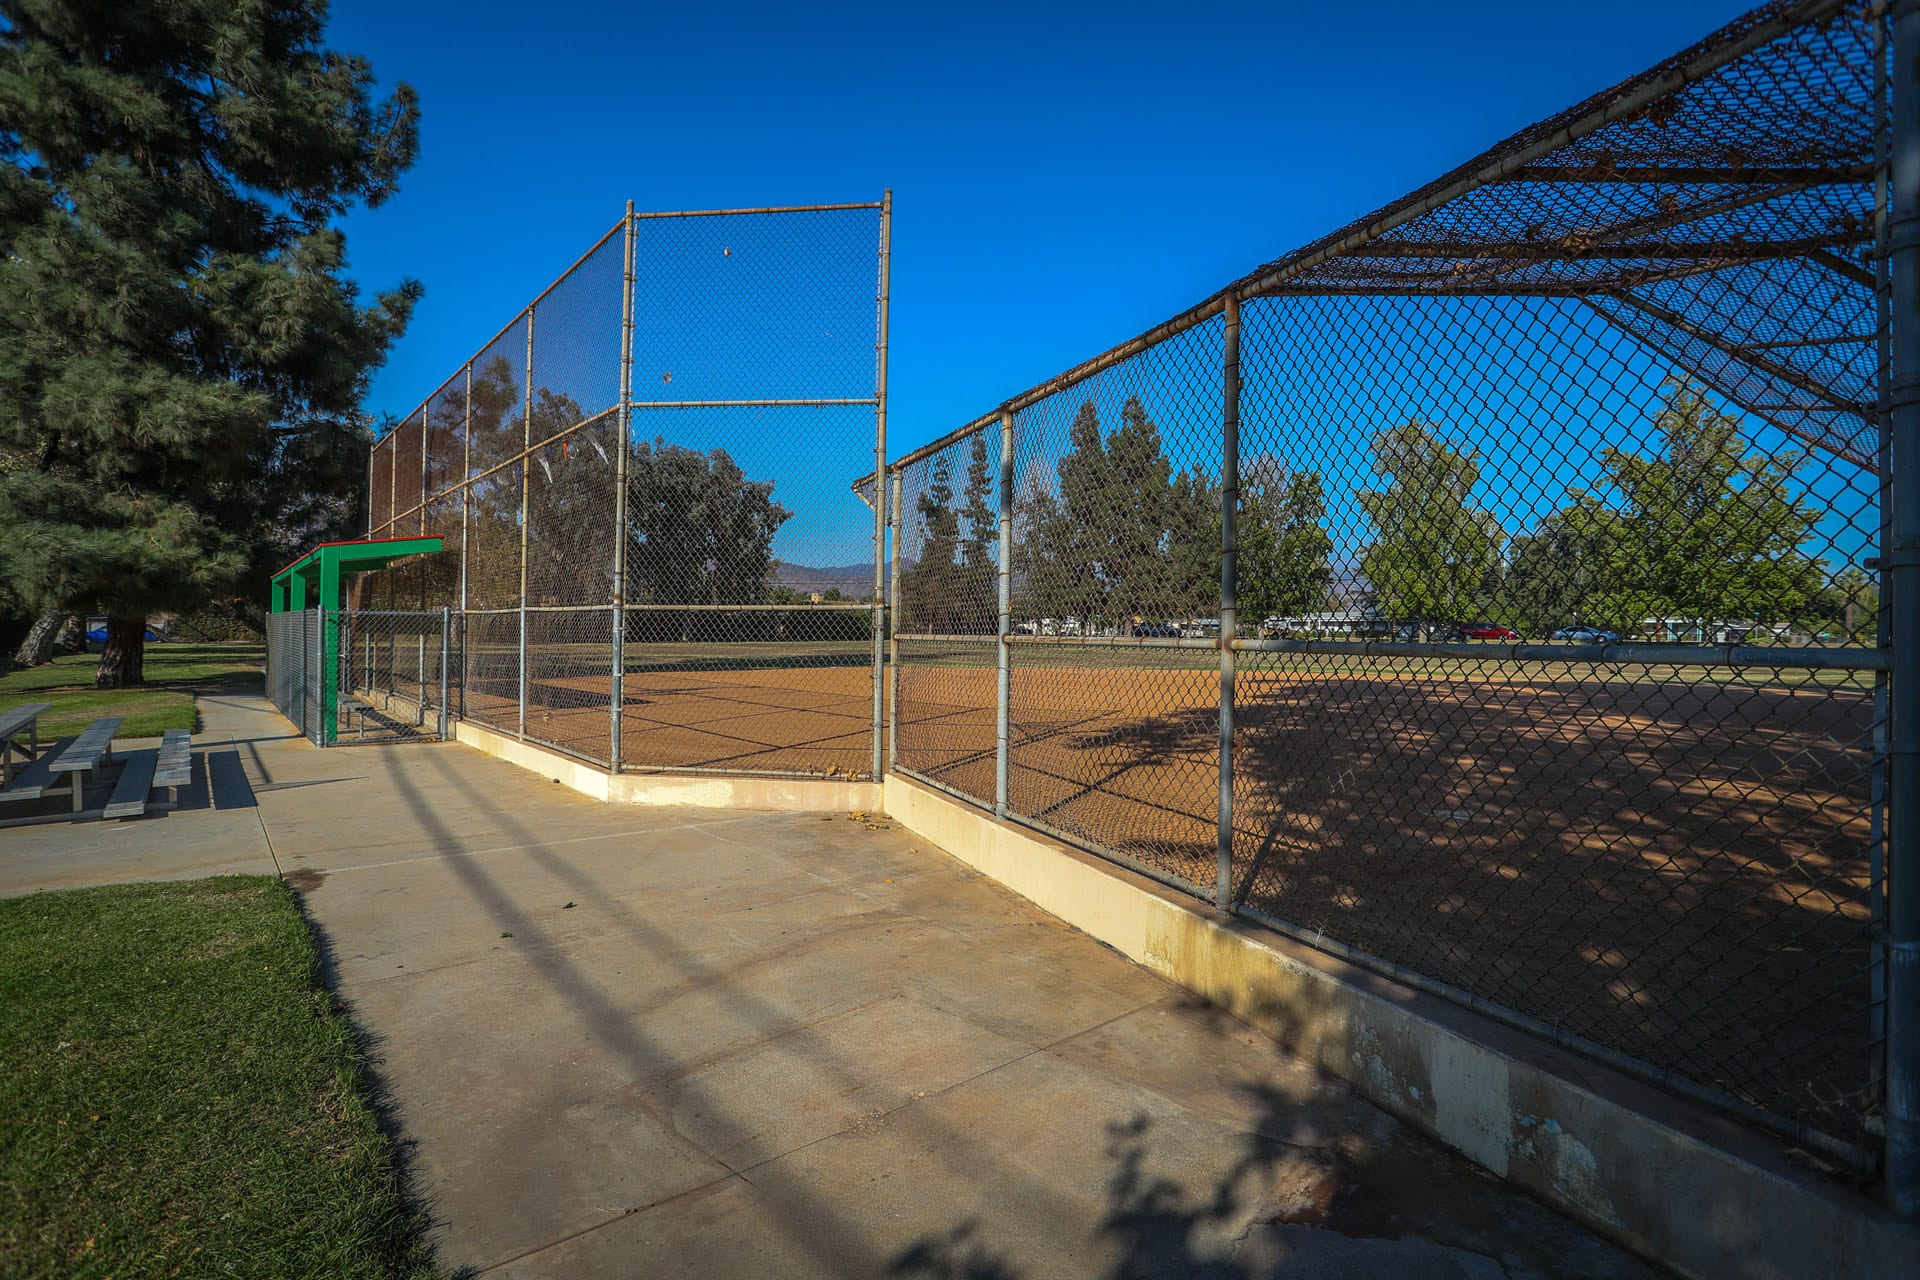 Baseball net and nearby bleachers